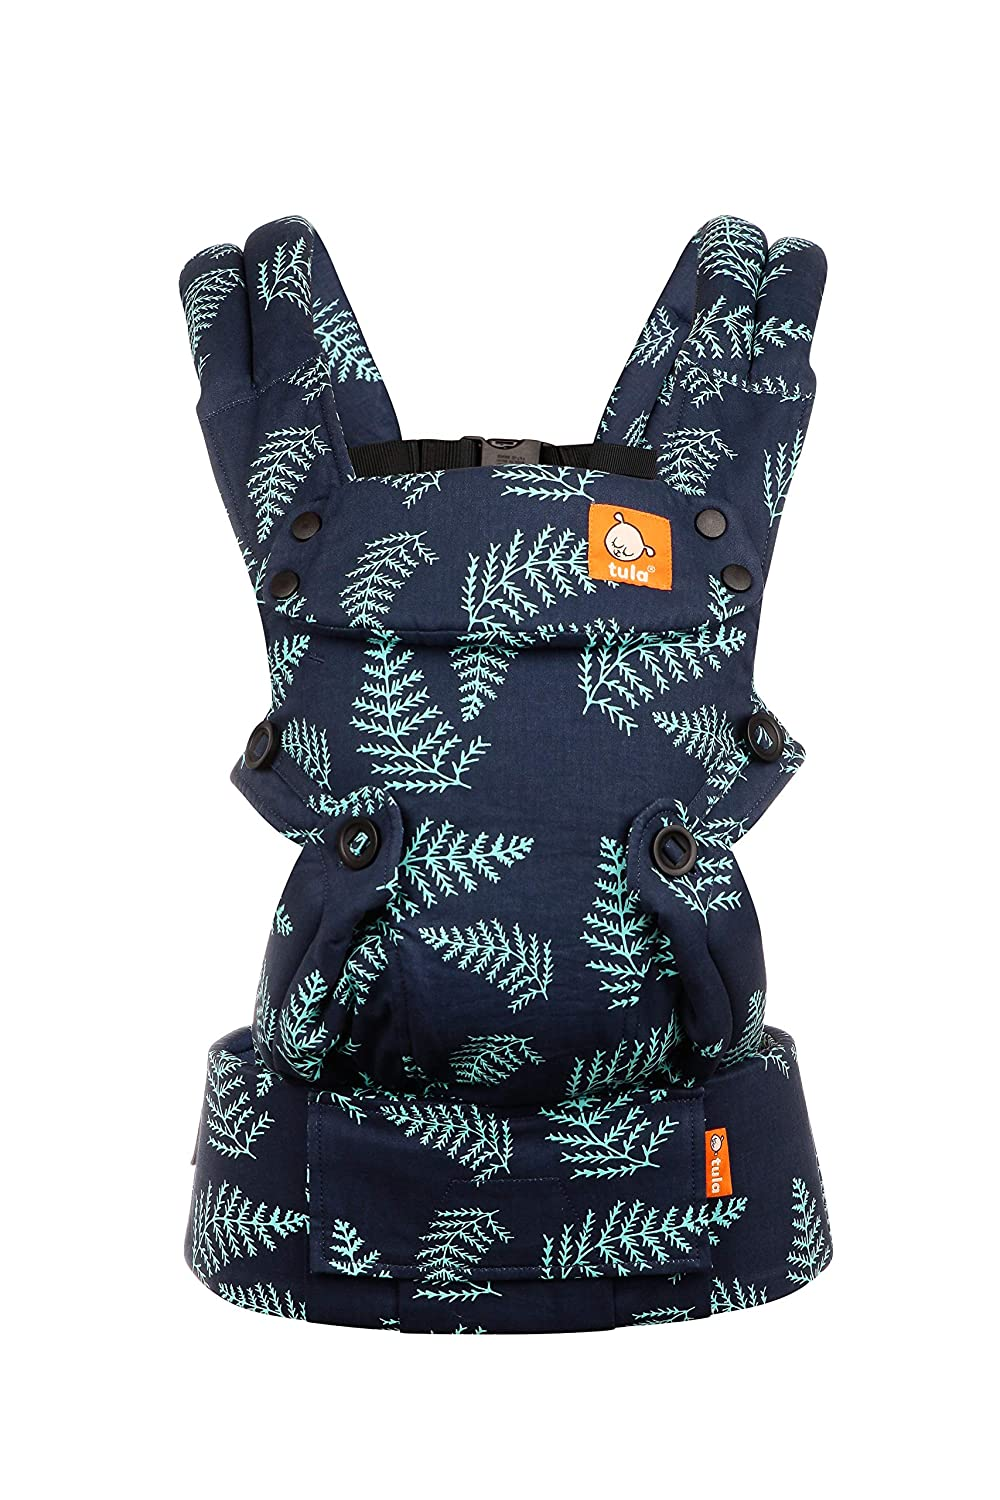 The best backpack for children: Tula Ergonomic Baby Carrier